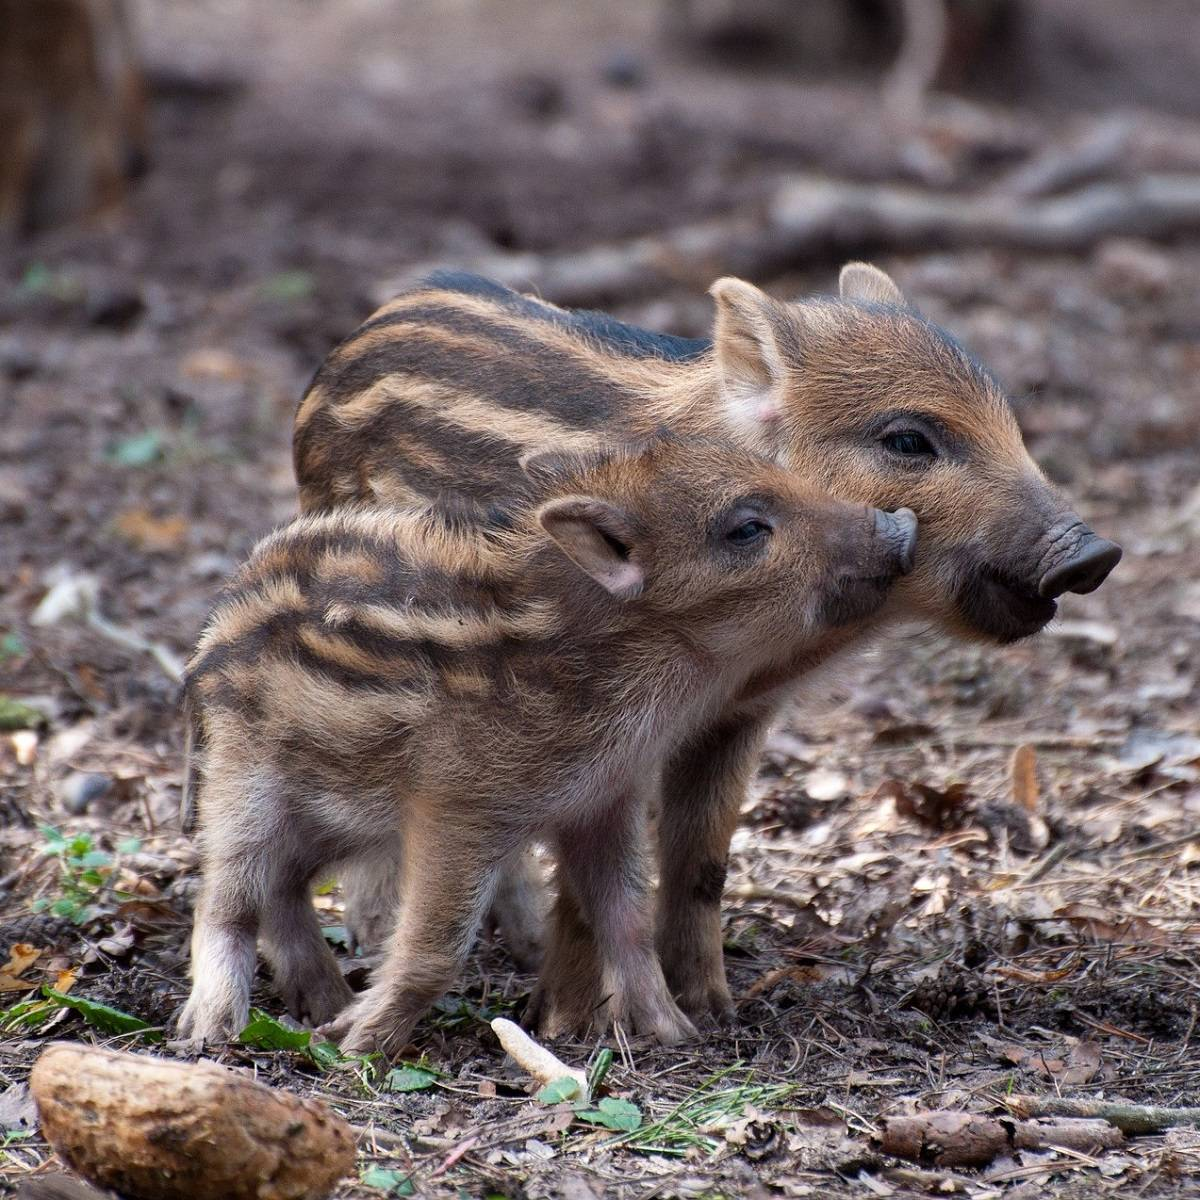 Two young wild boar in a forest